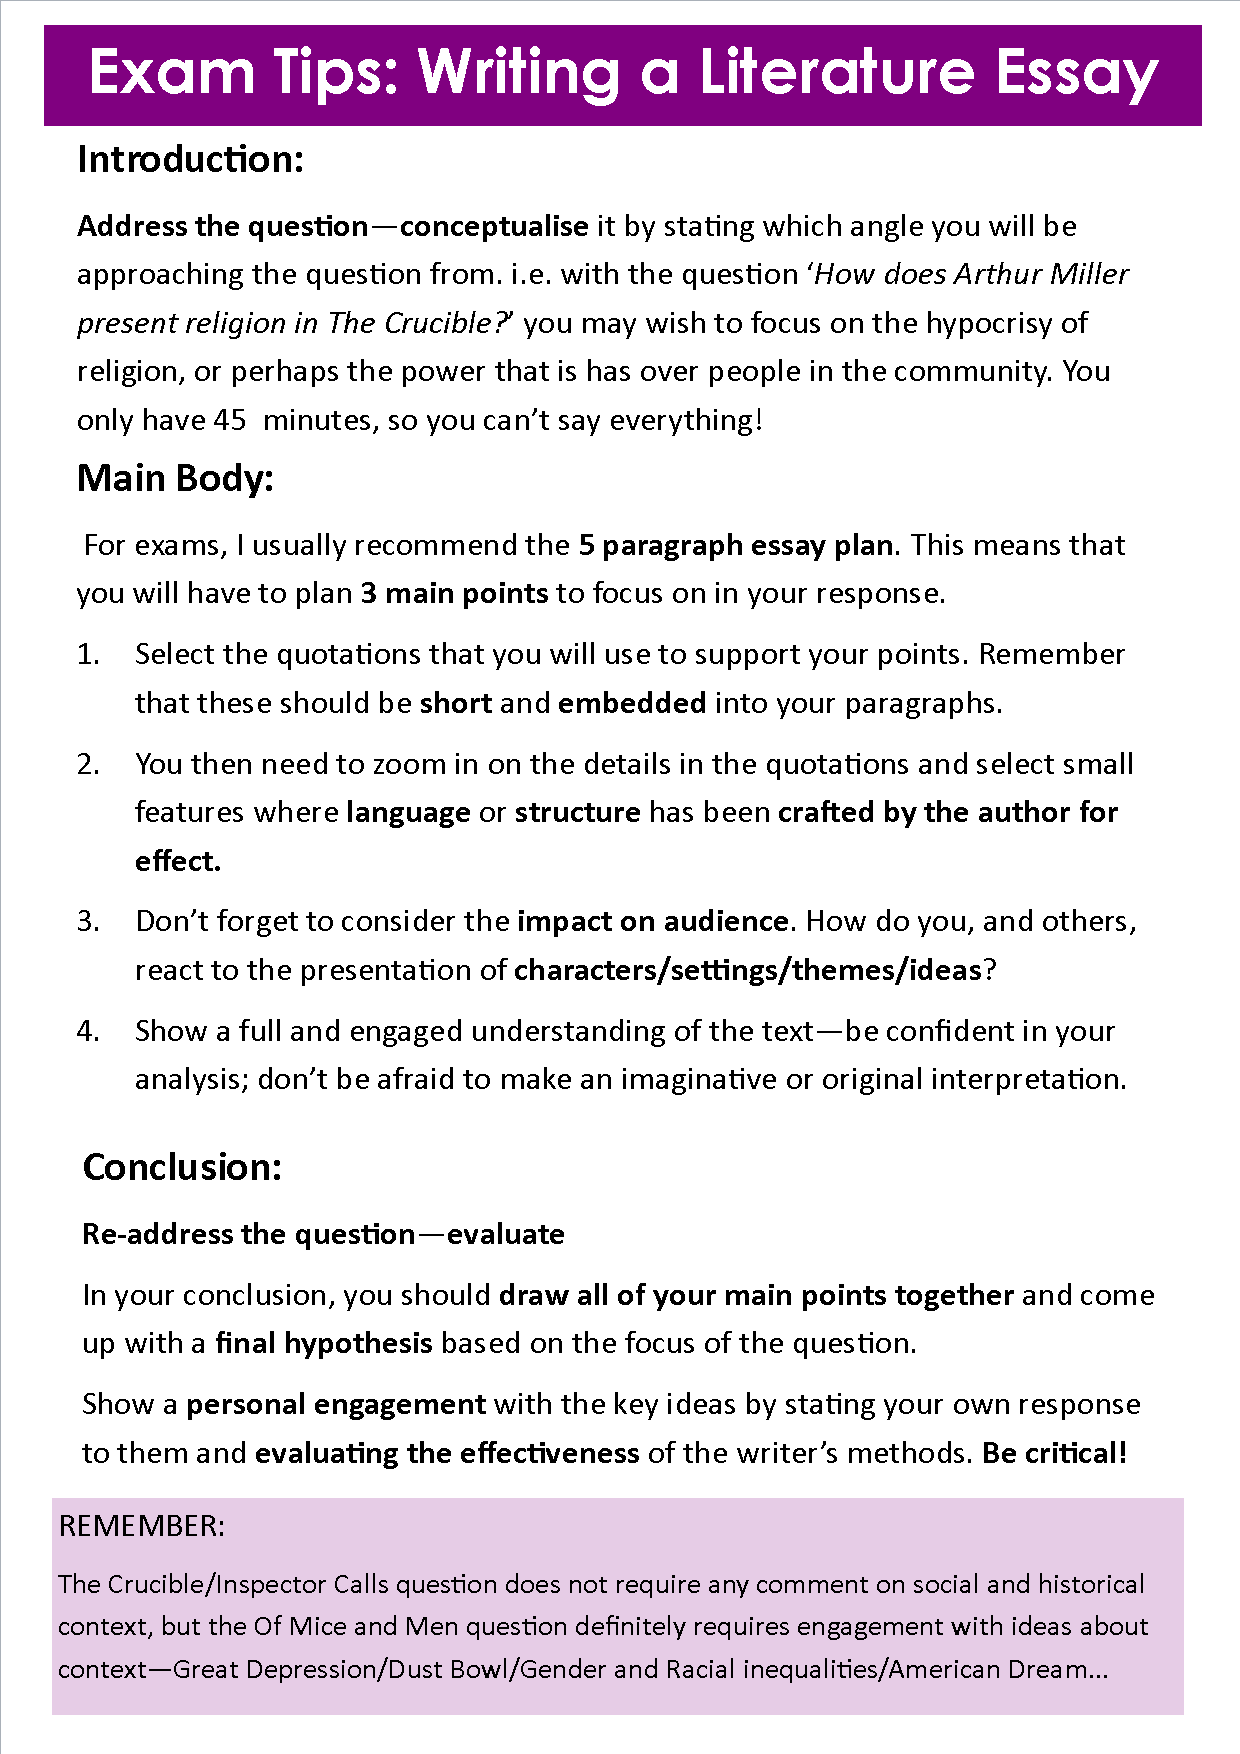 essay structure english The causal structure in english has specific features that are distinct features of english language along with common structures that can be traced in other.